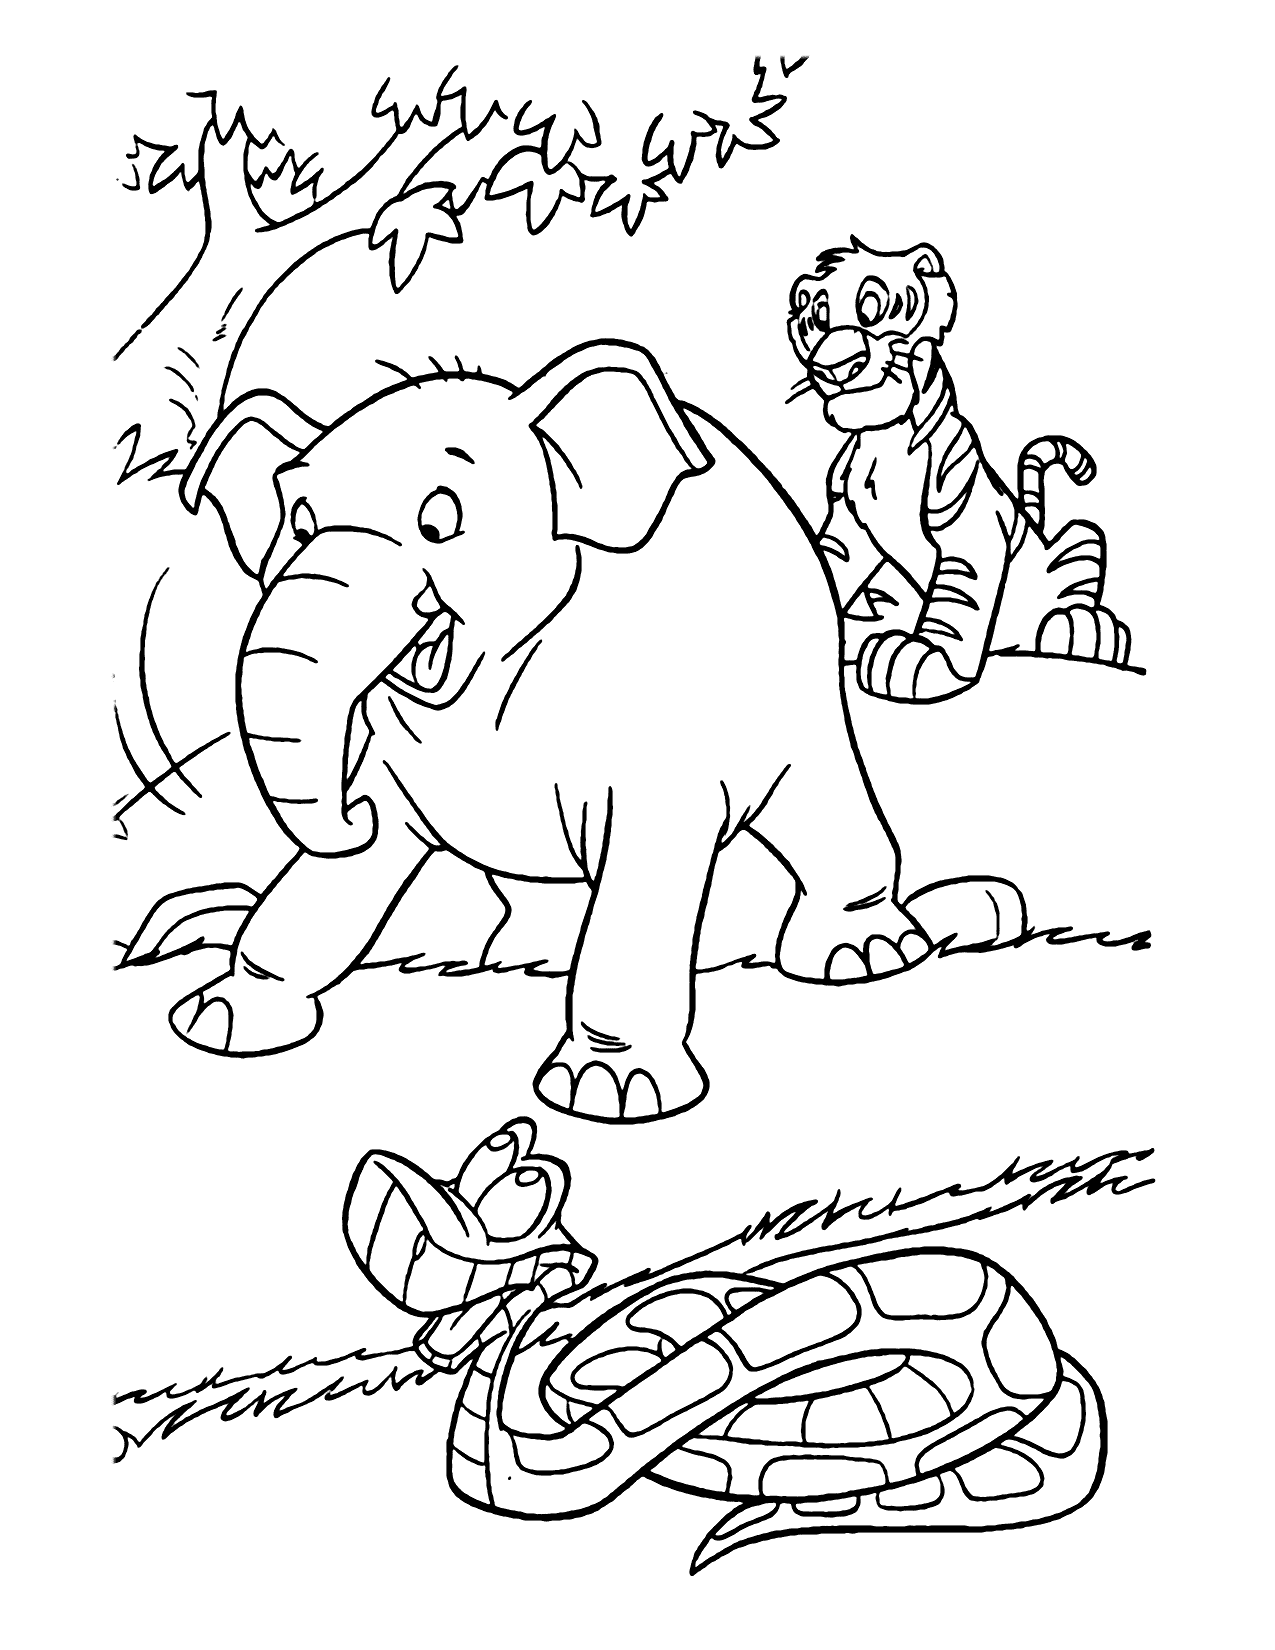 Jungle Book Characters Coloring Pages